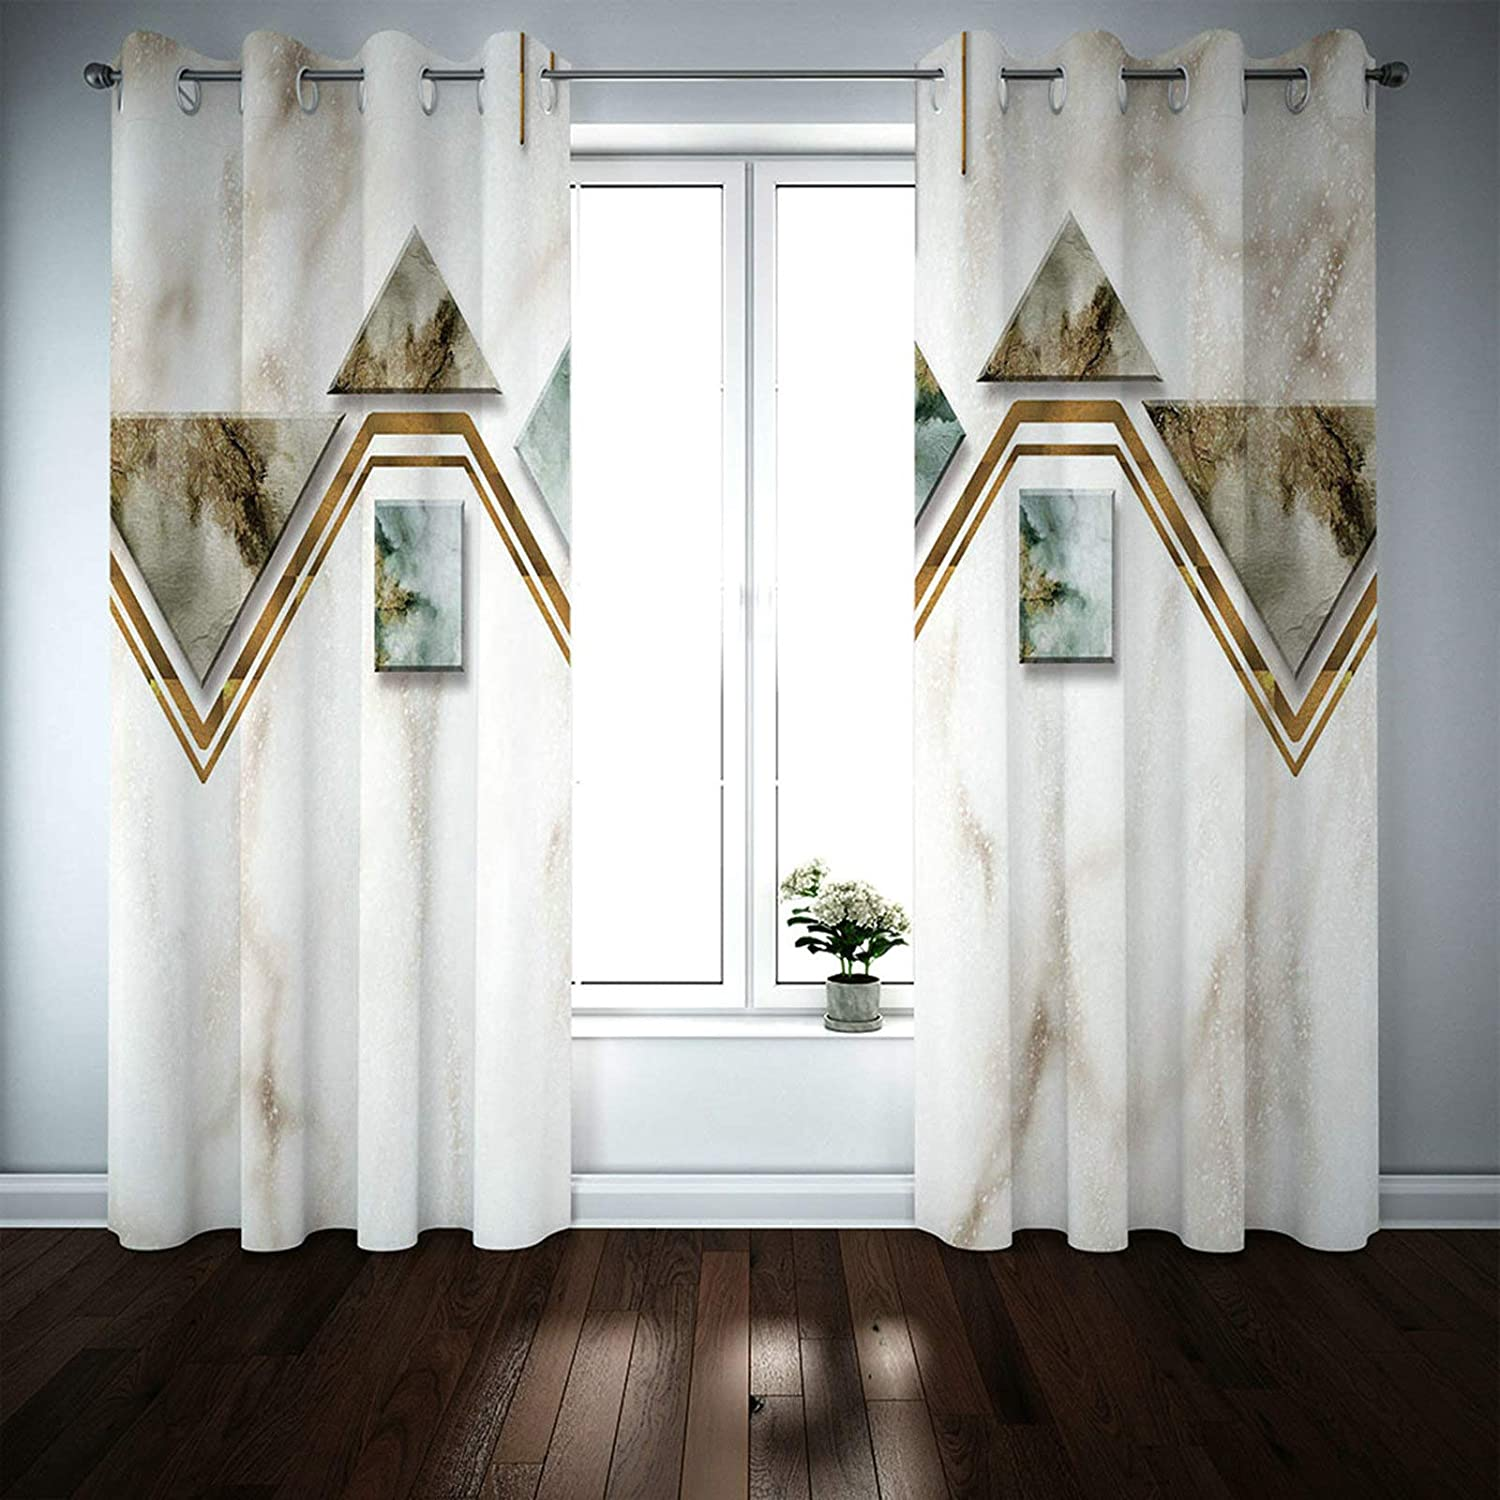 MoAndy Textured Blackout Curtains 2 Panels Livingr 45 x 52 Max 69% OFF Max 72% OFF Inch